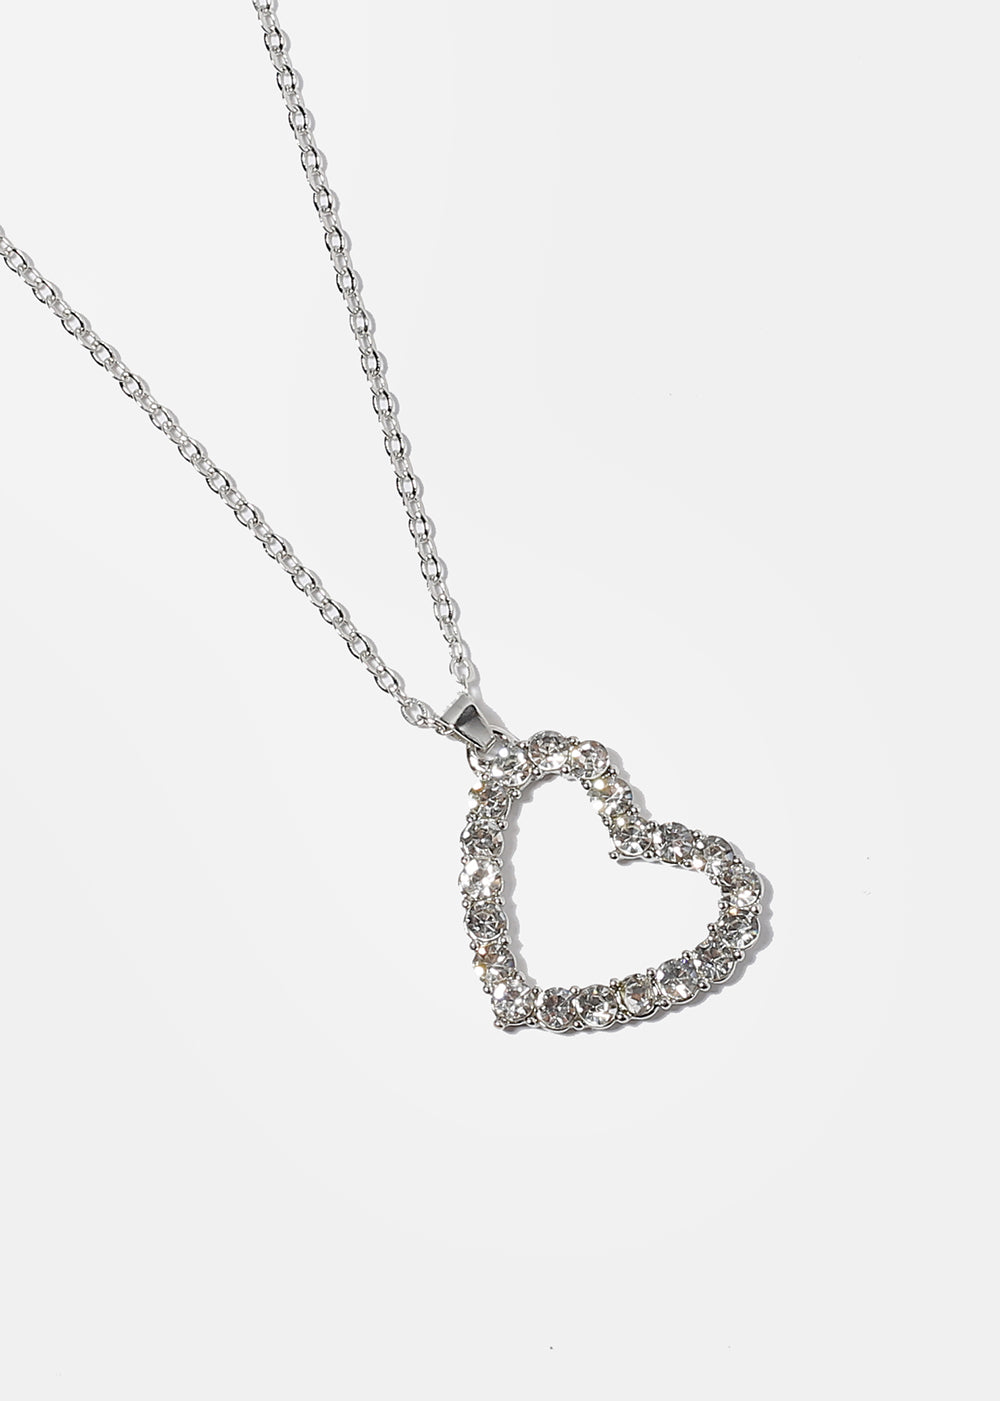 Rhinestone Heart Pendant Necklace